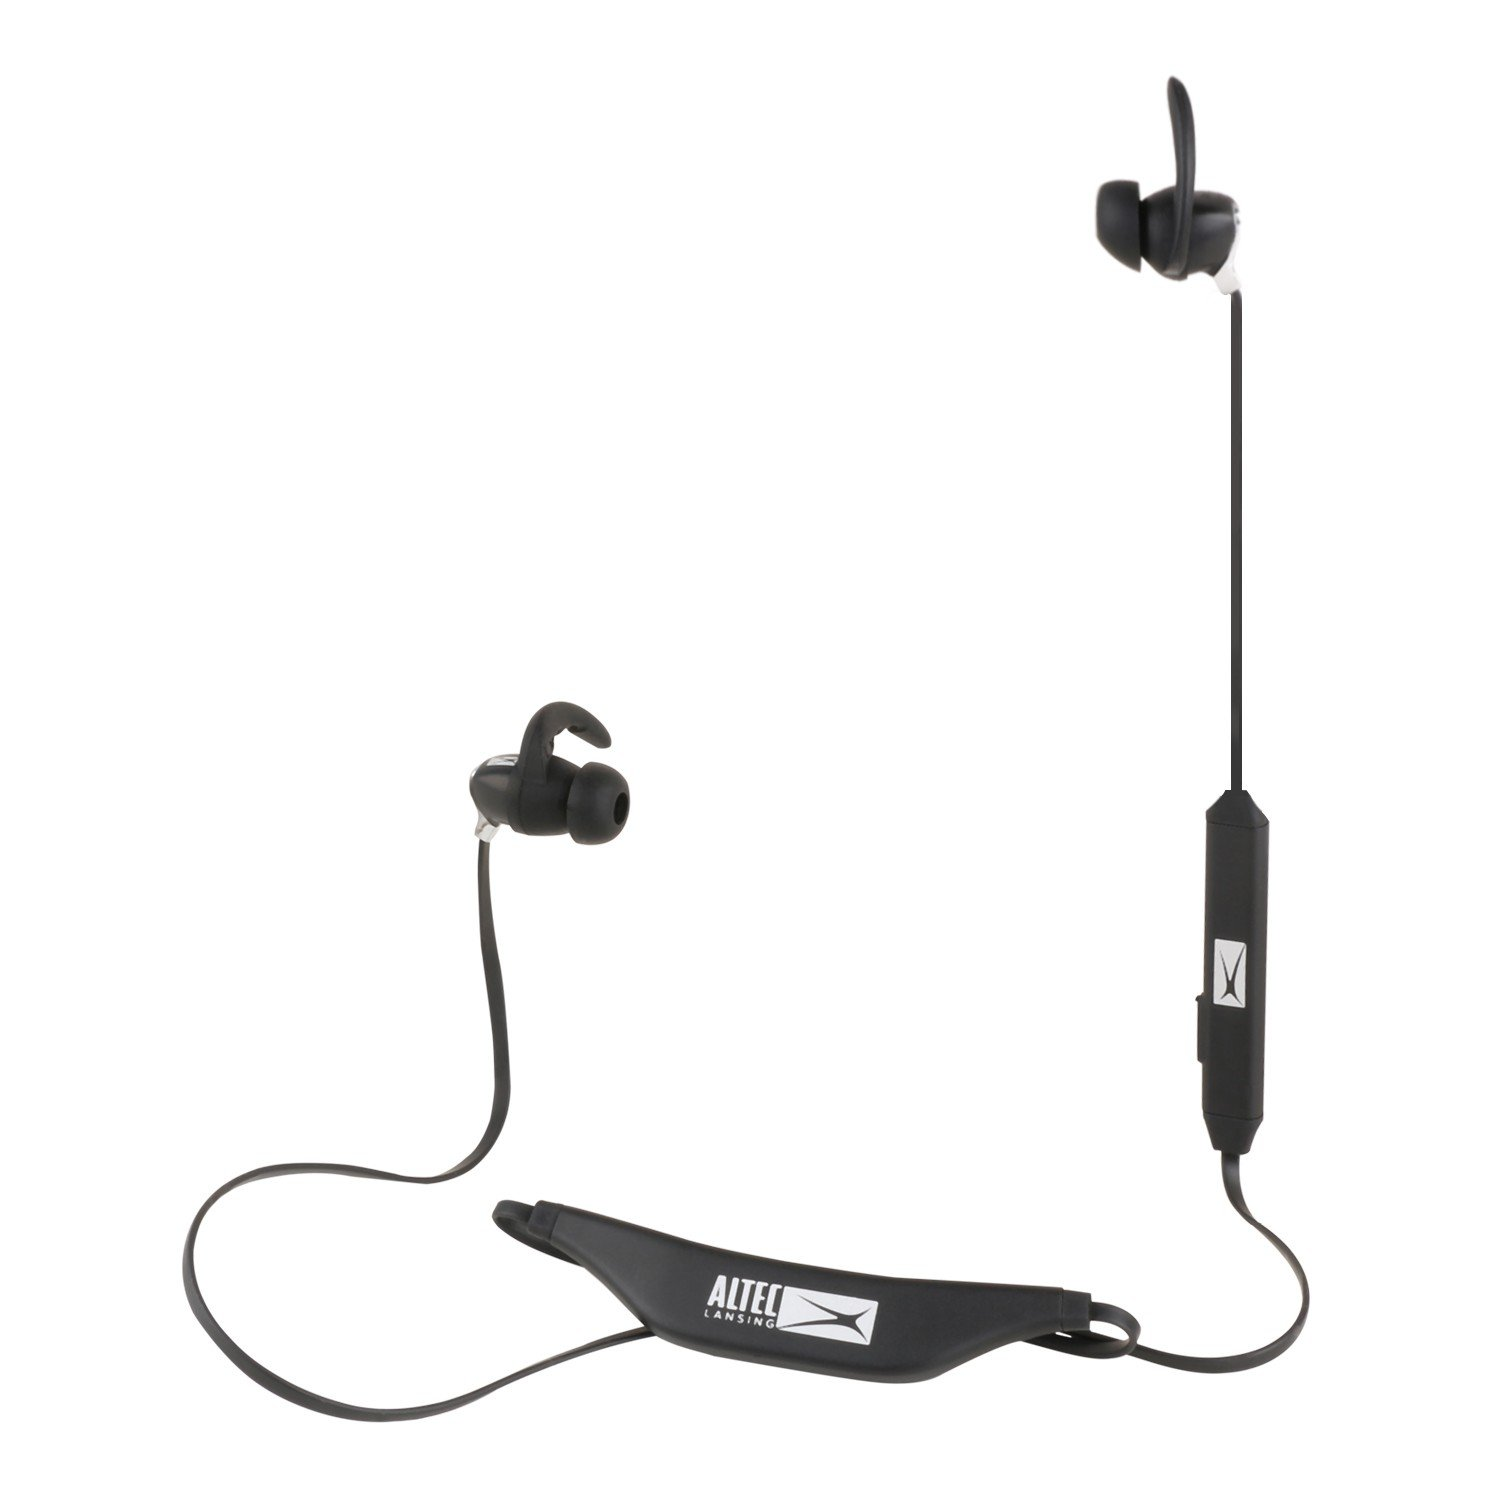 Amazon Altec Lansing MZW100 BLK BT In Ear Sport Ear Buds Black Cell Phones & Accessories